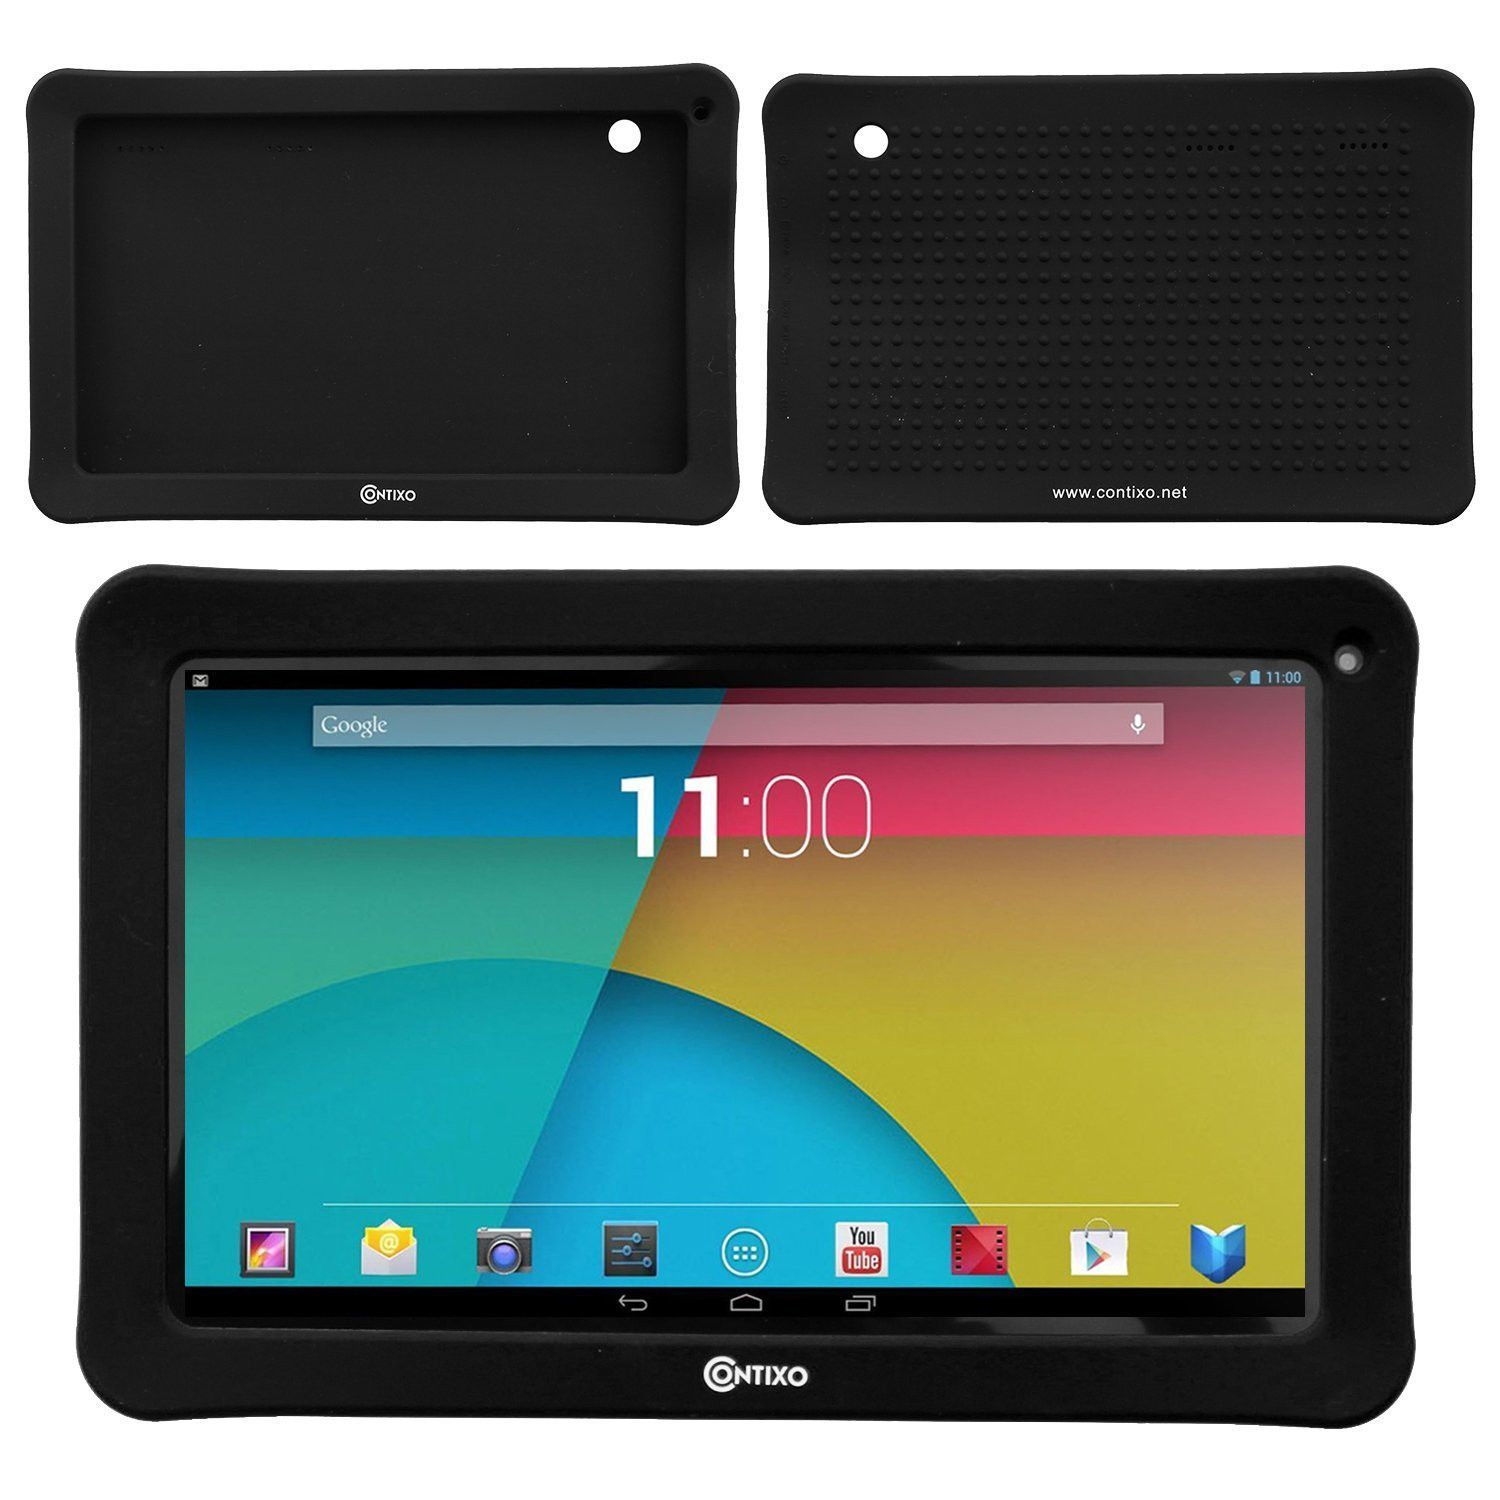 Contixo defender series silicone 101 inch android tablet